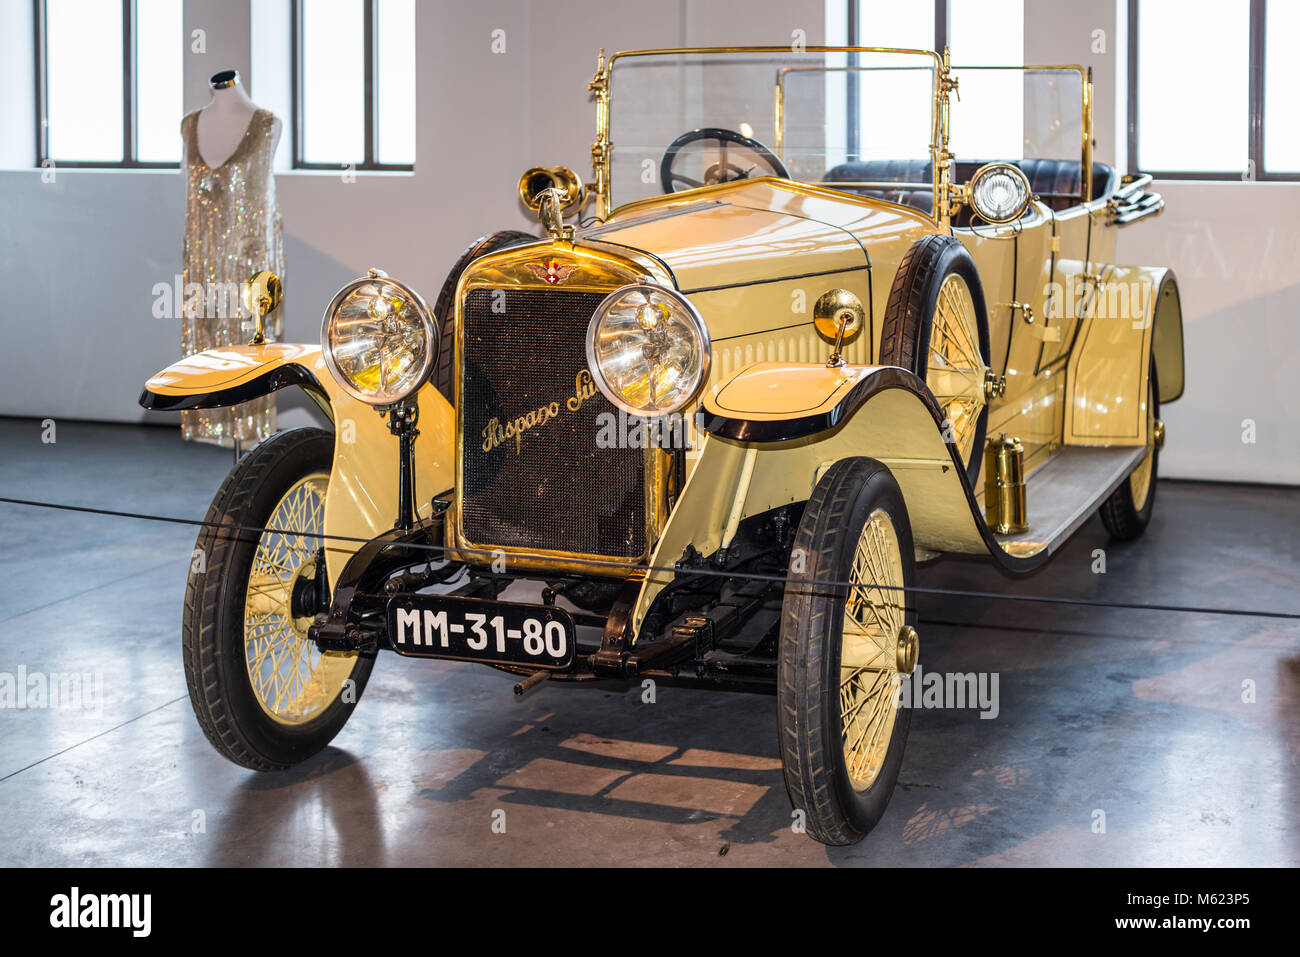 Malaga, Spain - December 7, 2016: Vintage 1917 Hispano-Suiza Spanish car displayed at Malaga Automobile and Fashion - Stock Image